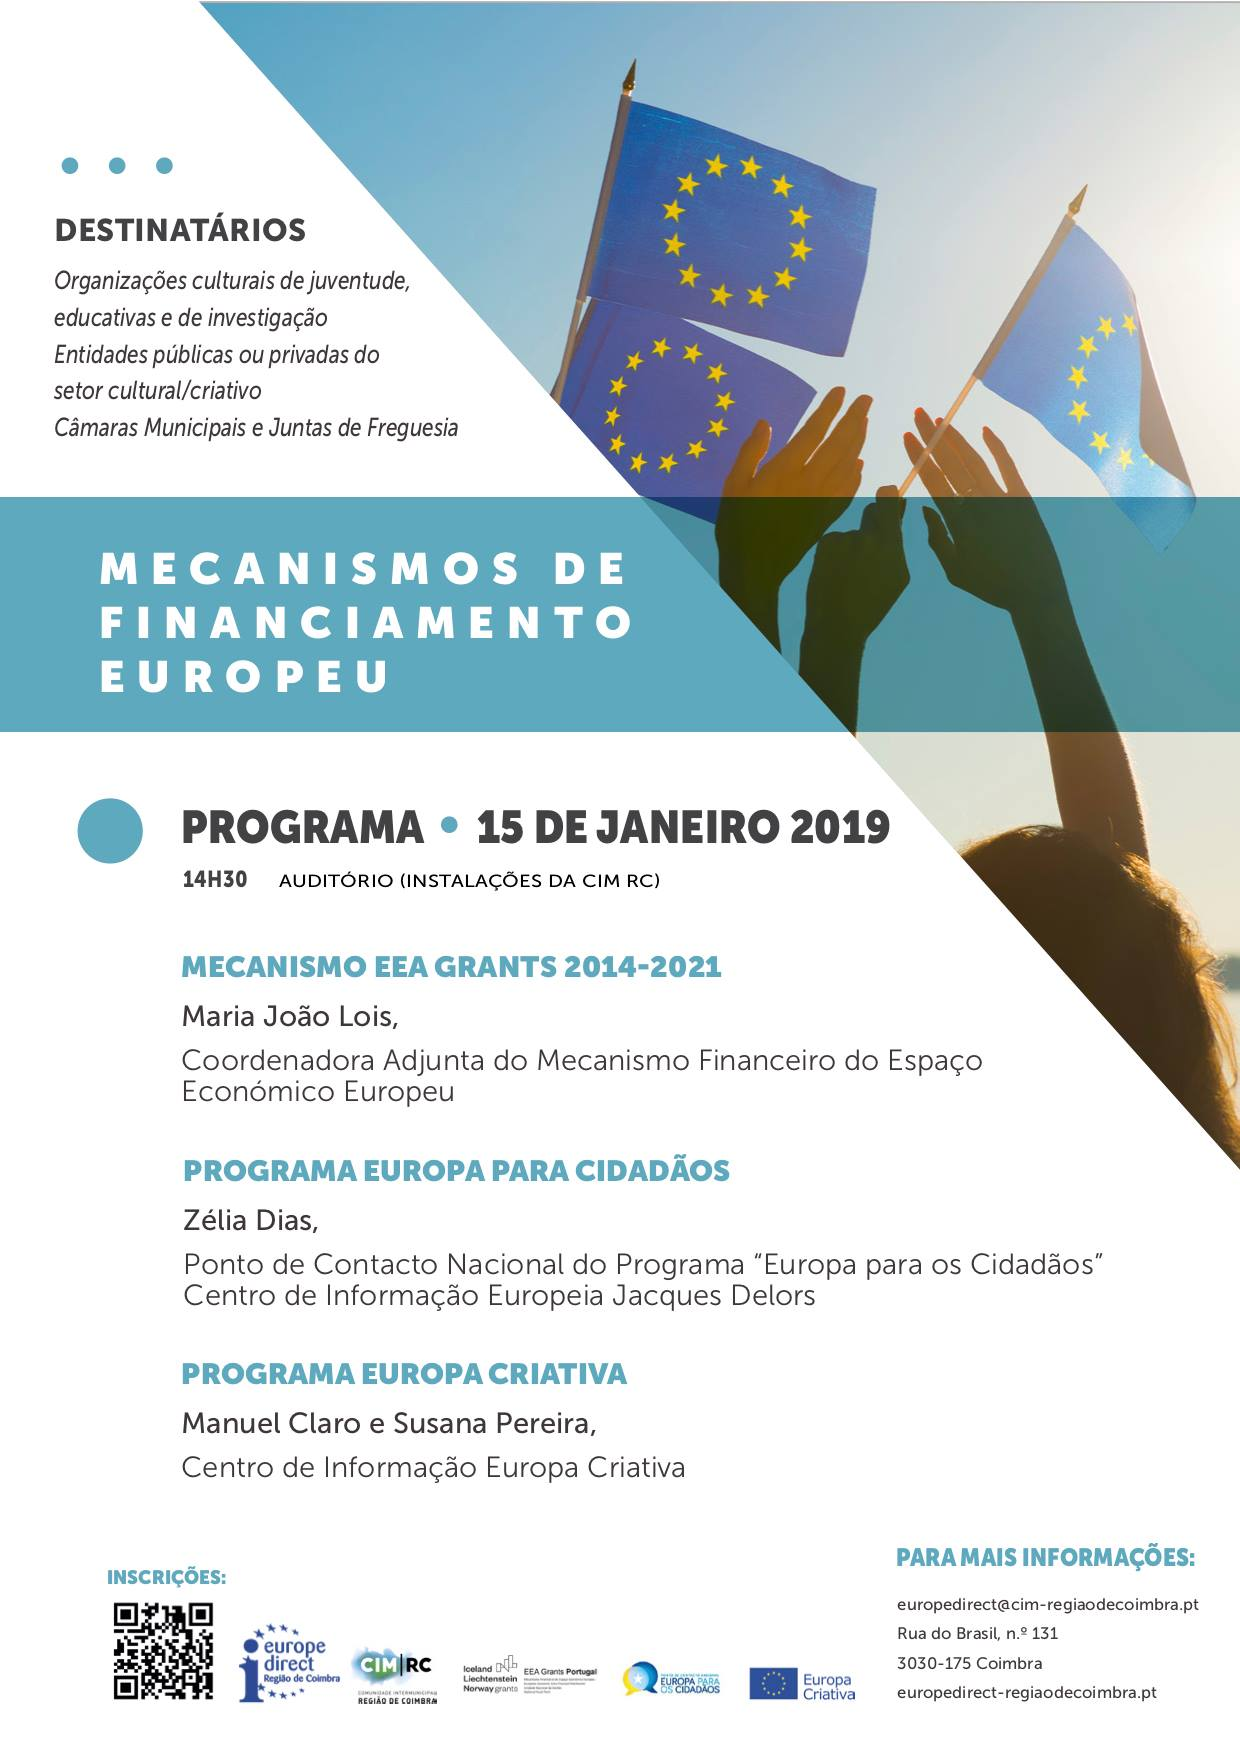 Mecanismos de Financiamento Europeu - Europe Direct Região de Coimbra